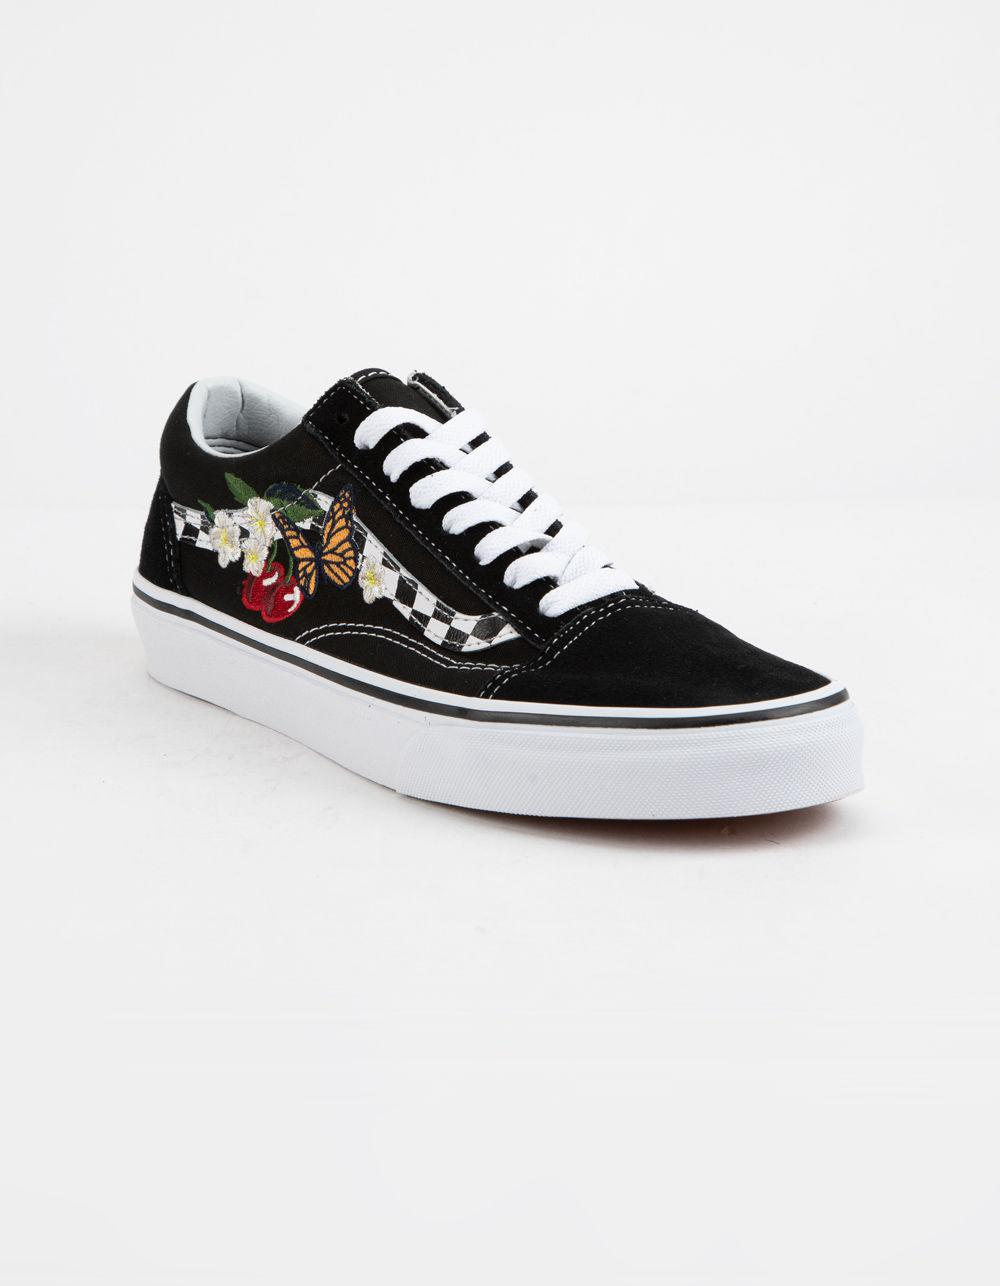 Lyst - Vans Checker Floral Old Skool Womens Shoes in Black c93b67a99e